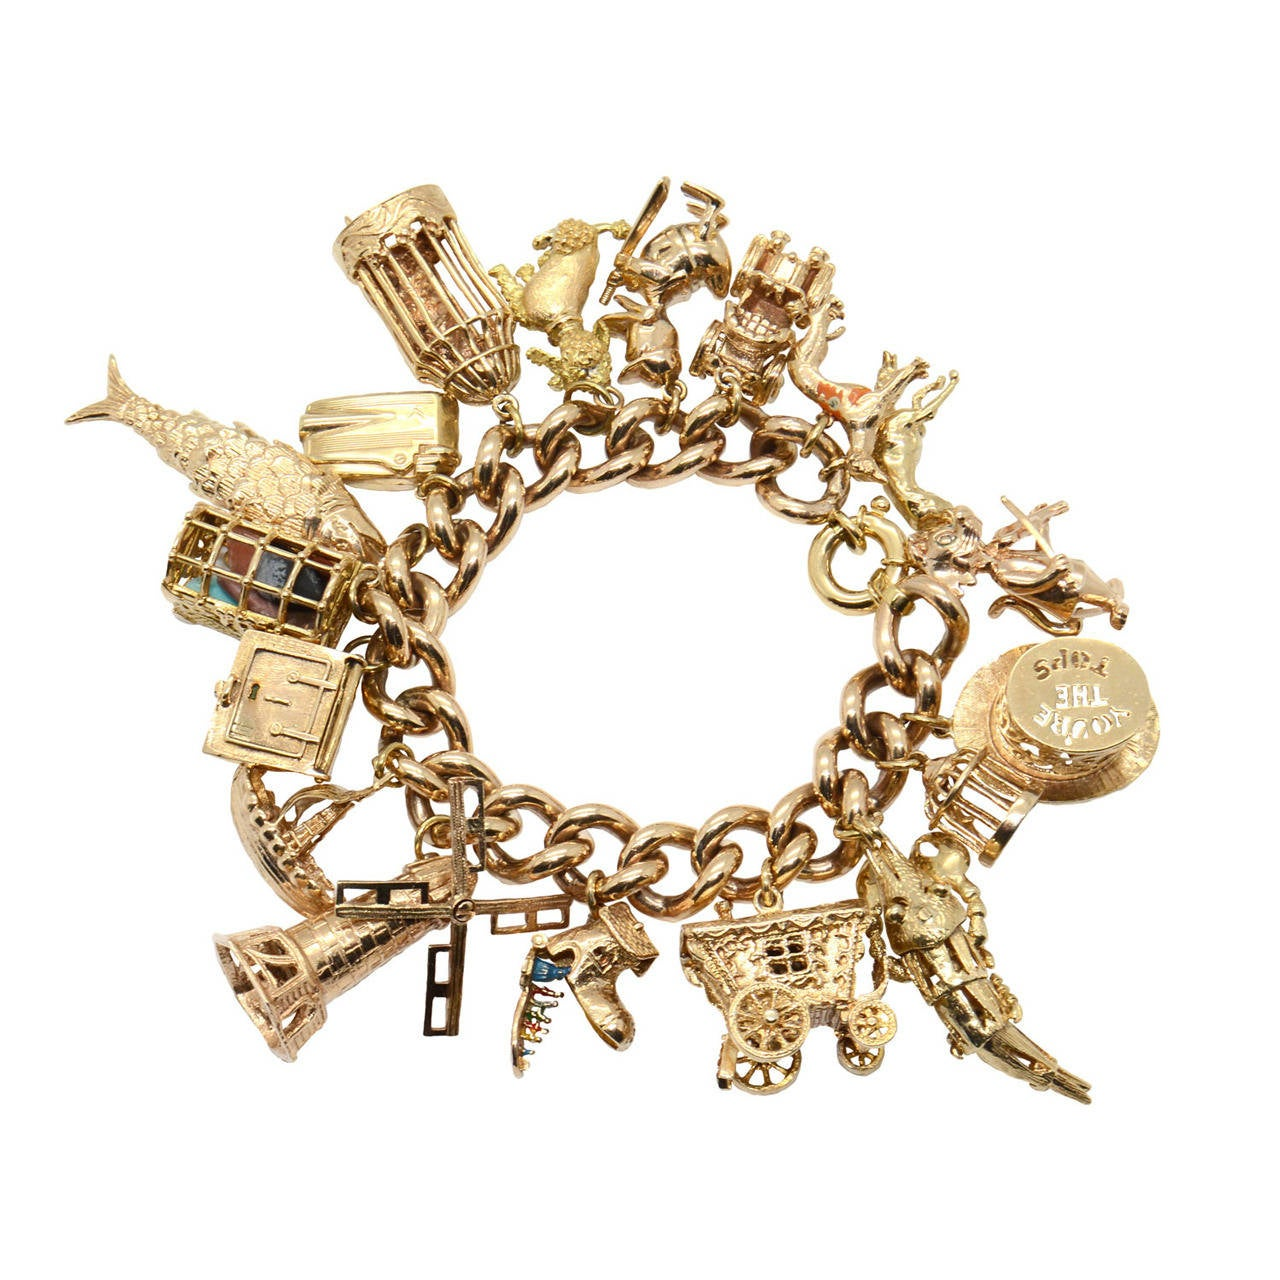 Gold Charm Bracelets: A 1960s Gem Set Gold Charm Bracelet At 1stdibs